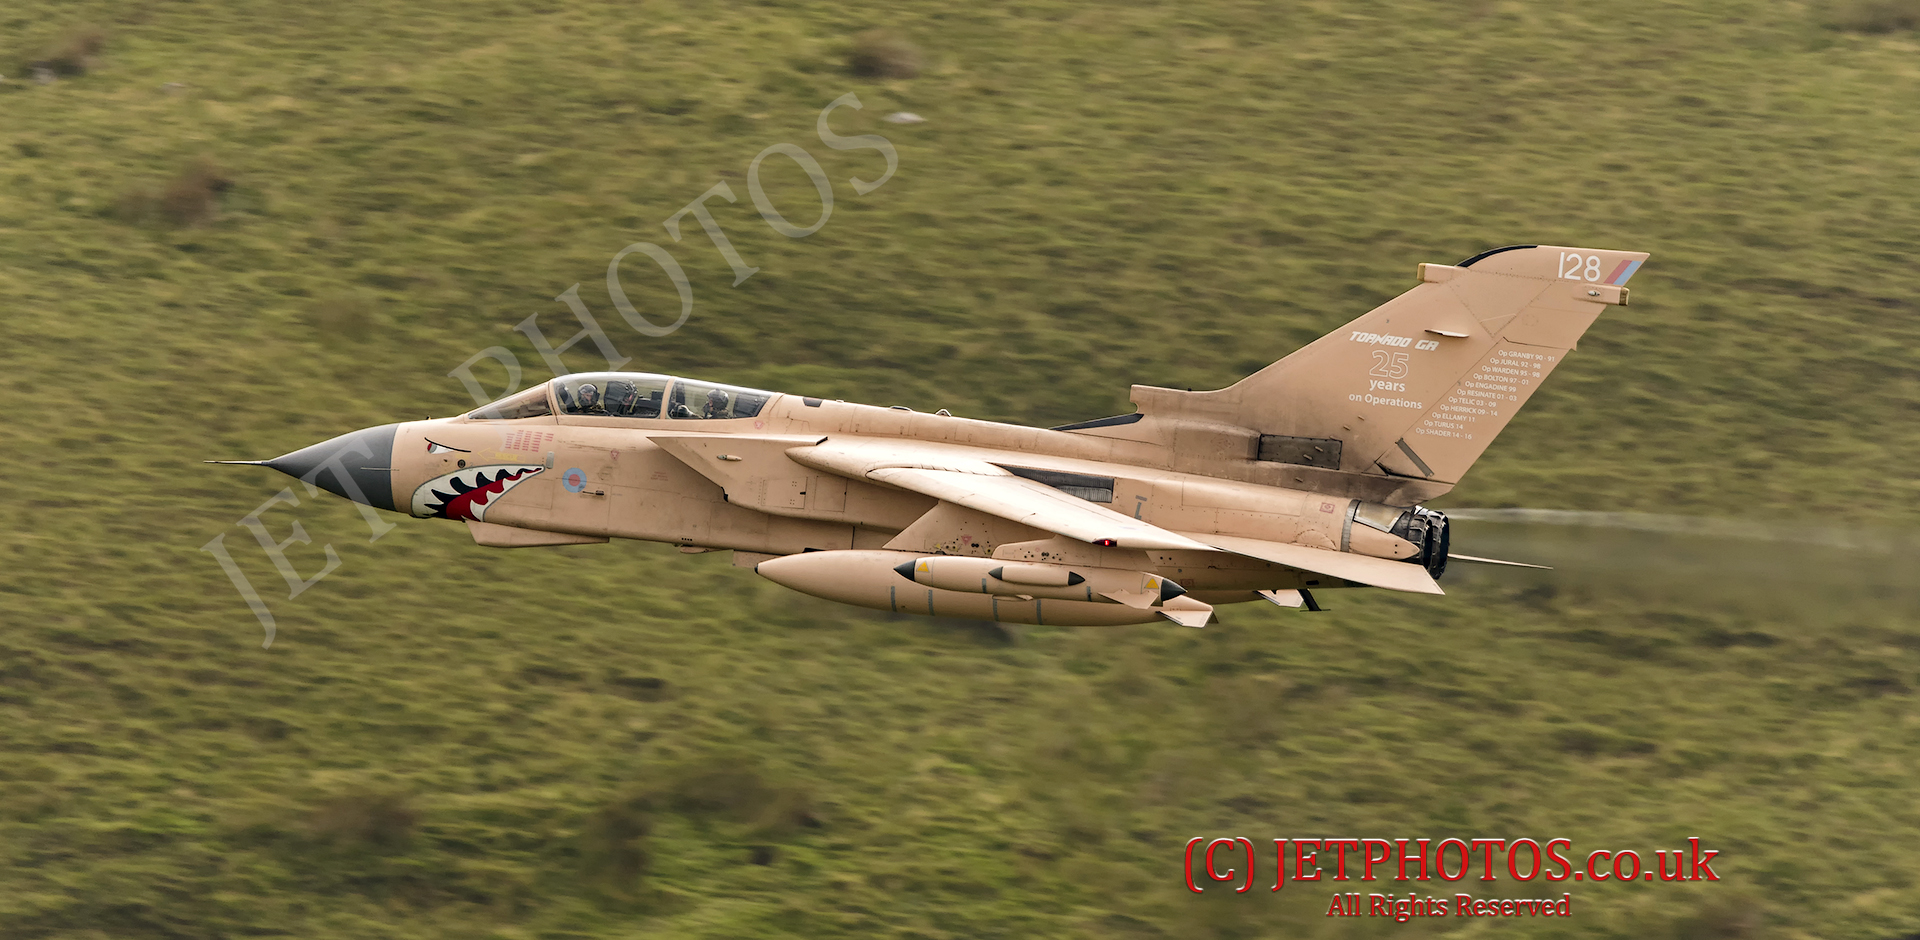 "RAF Tornado GR4 on a low level flying sortie in the Mach Loop LFA7 in Operation Granby colour scheme. Hence the aircraft identified as ""Pinky"". Scheme celebrates 25 years post Iraqi forces withdrawal from Kuwait. Battle Honours are also visible on the tail fin."